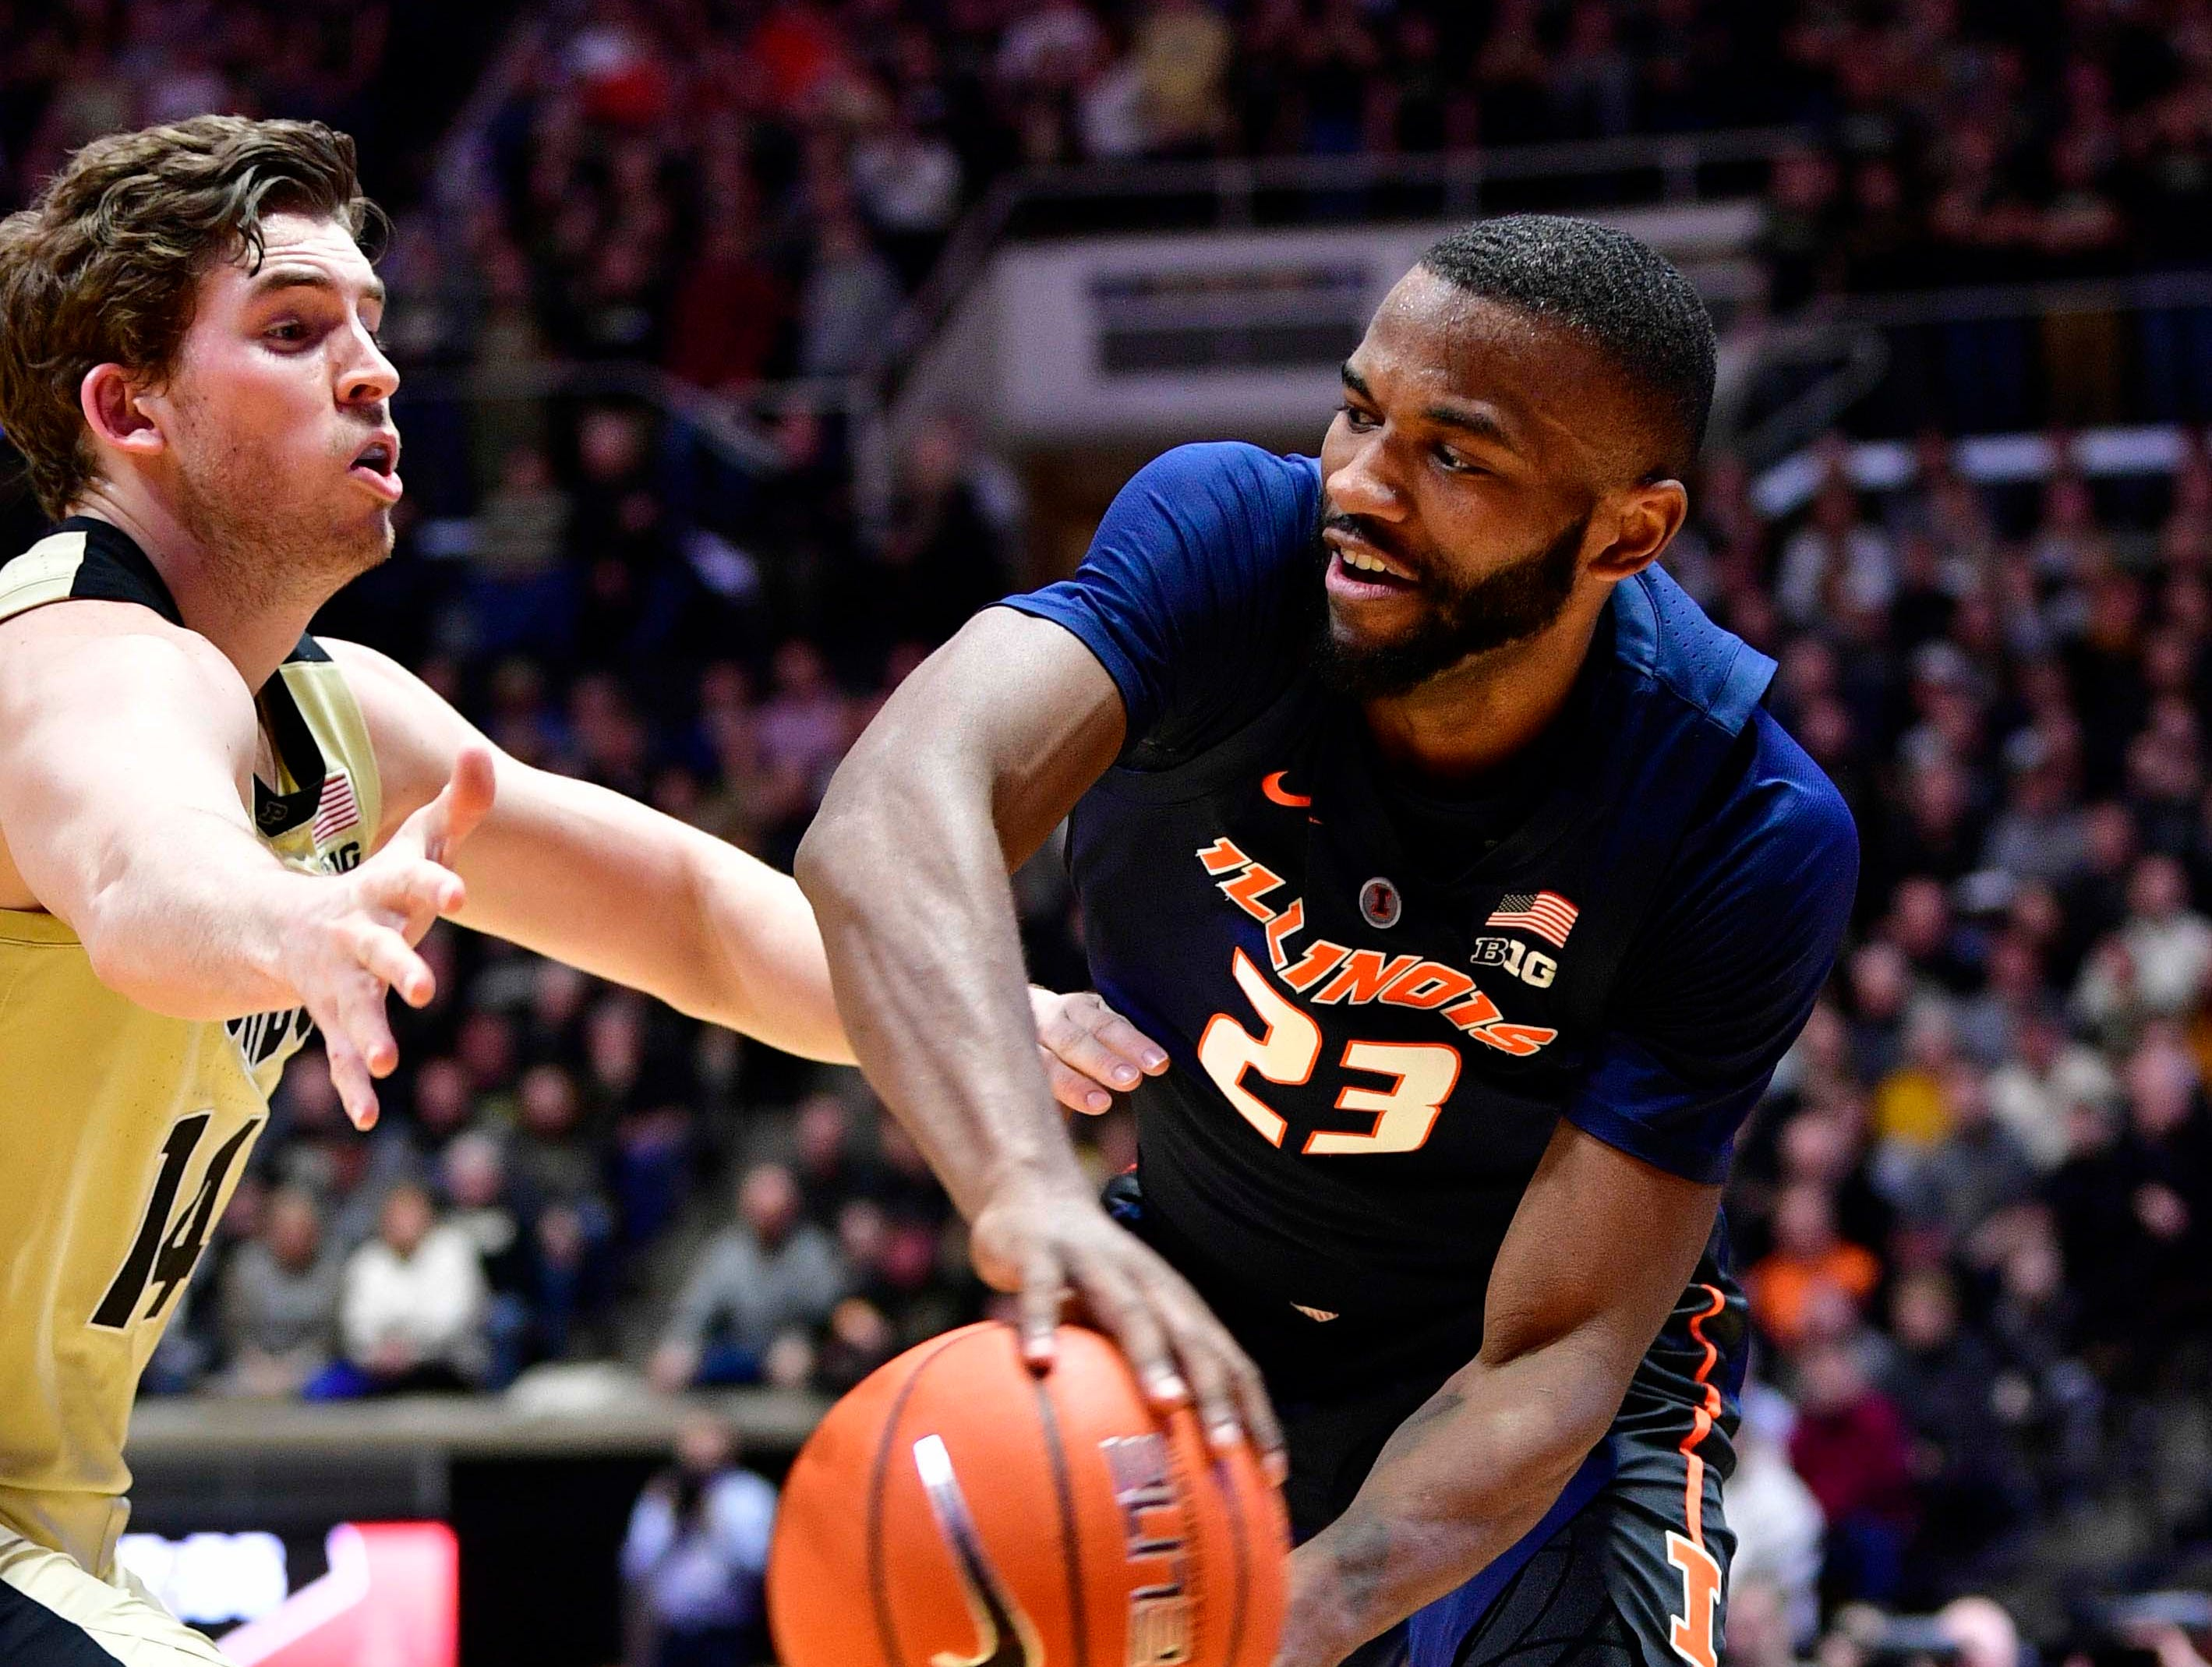 Feb 27, 2019; West Lafayette, IN, USA; Illinois Fighting Illini guard Aaron Jordan (23) looks for an open teammate against Purdue Boilermakers guard Ryan Cline (14) during the first half of the game at Mackey Arena. Mandatory Credit: Marc Lebryk-USA TODAY Sports